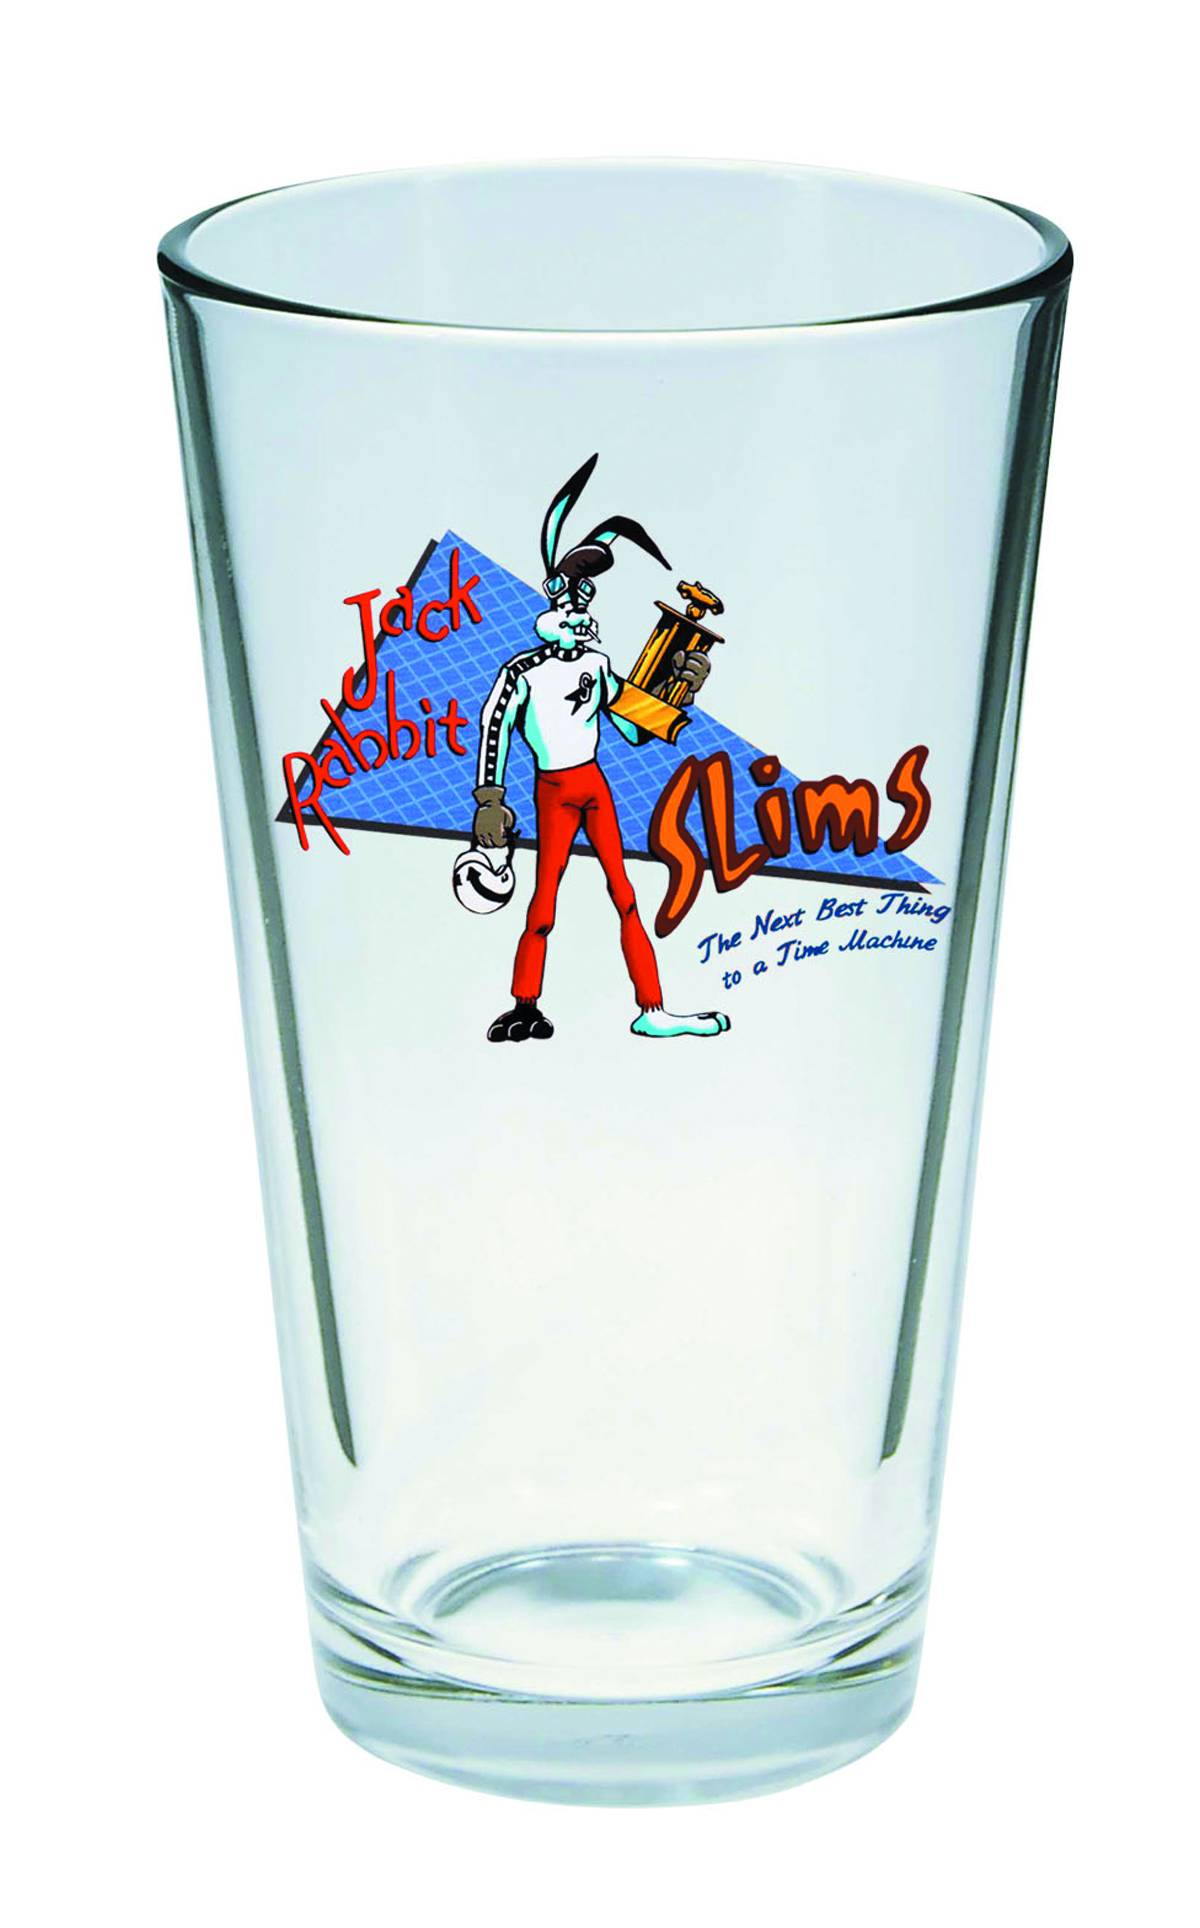 Pulp Fiction Jack Rabbit Slim's Pint Glass